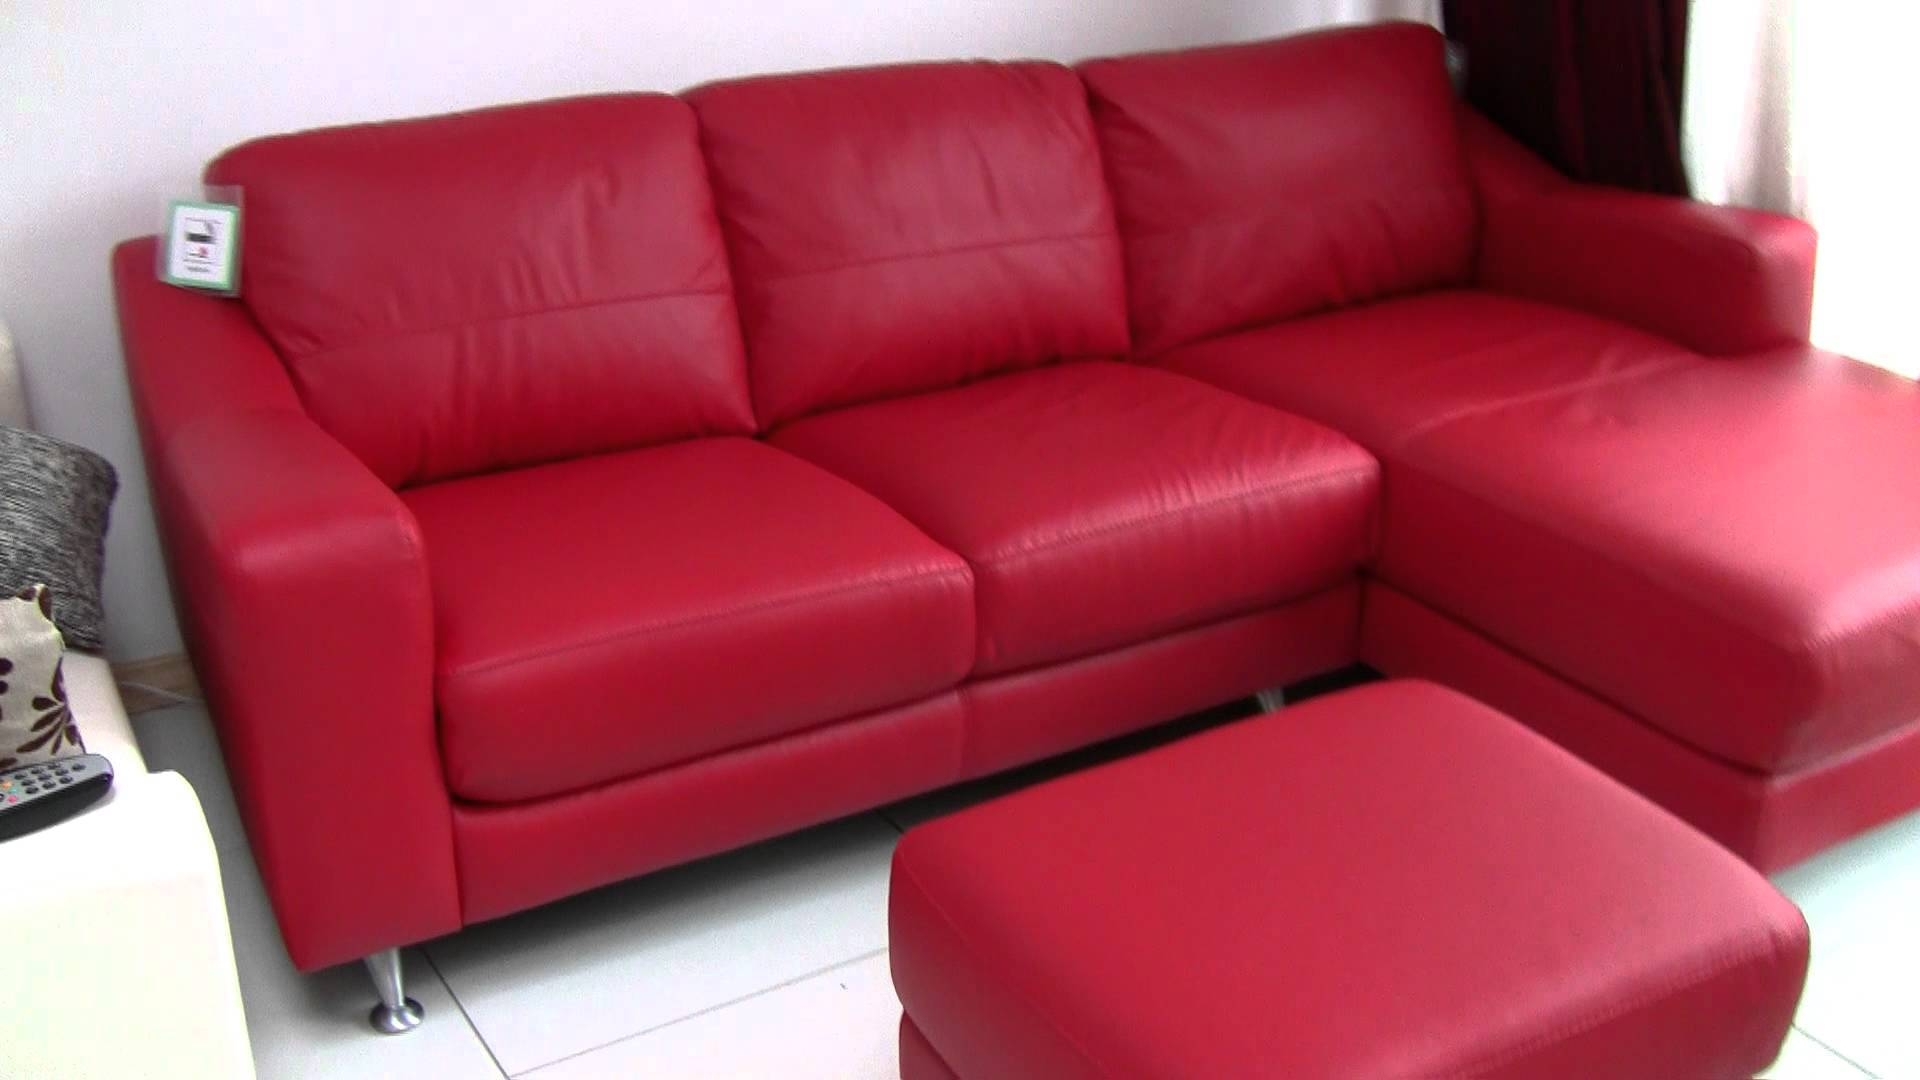 Dfs Leather Corner Sofa For Sale £500 - Youtube pertaining to Leather Corner Sofa Bed (Image 10 of 30)